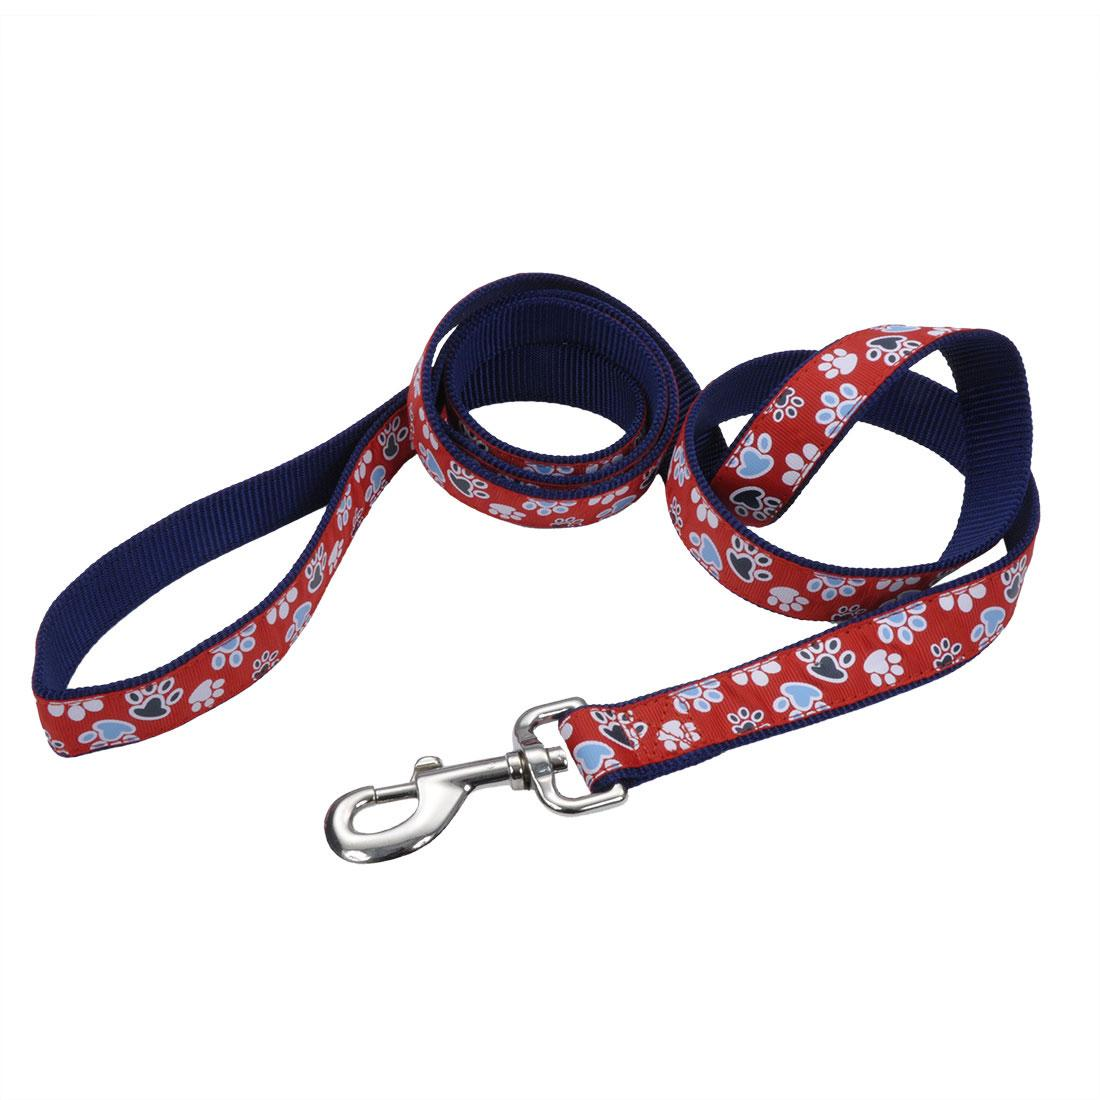 Ribbon Dog Leash, Red with Paws, 1-in x 6-ft